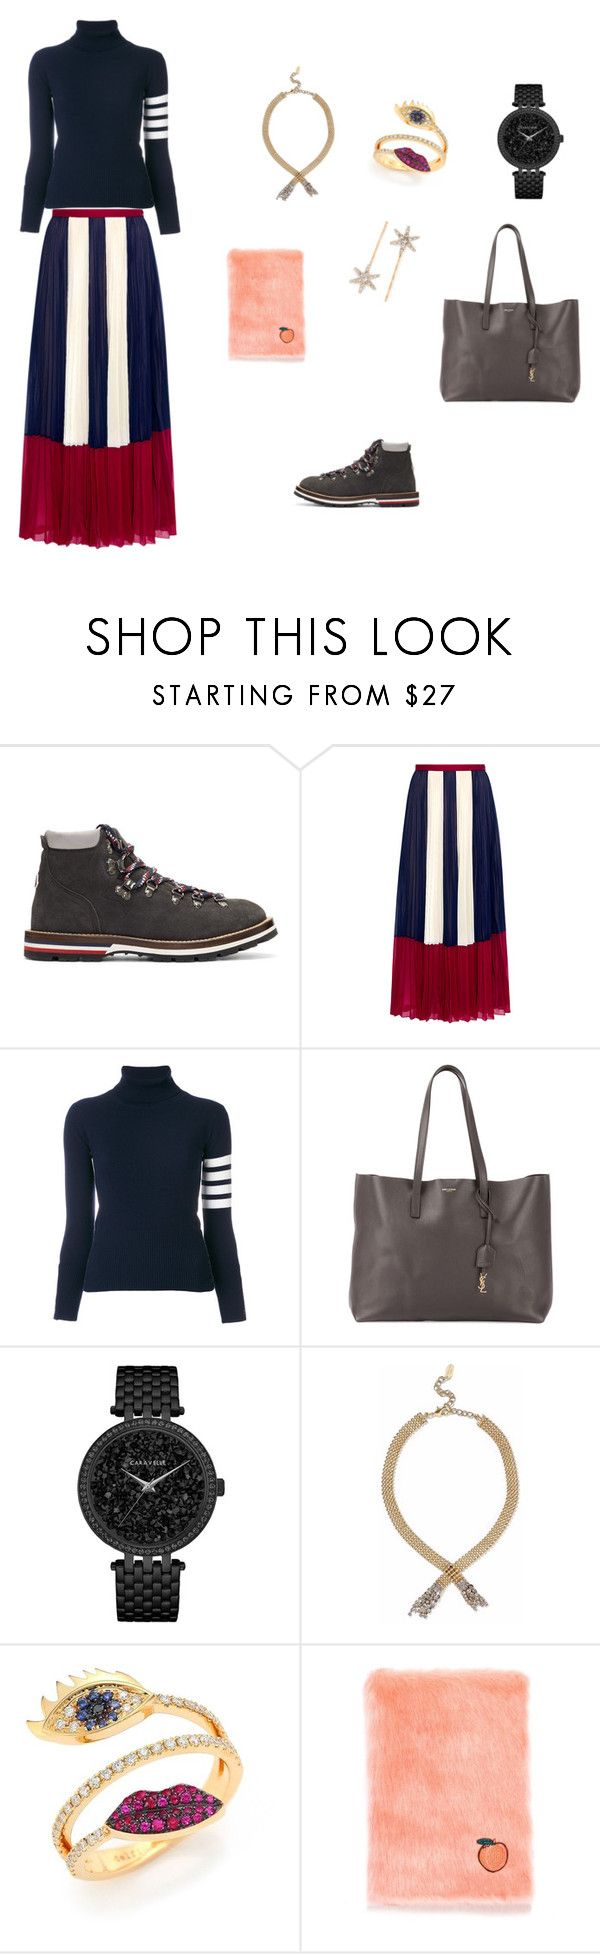 """Pleats and Stripes"" by chingjade ❤ liked on Polyvore featuring Moncler, RED Valentino, Thom Browne, Yves Saint Laurent, Caravelle by Bulova, Elizabeth Cole, Delfina Delettrez and Jennifer Behr"